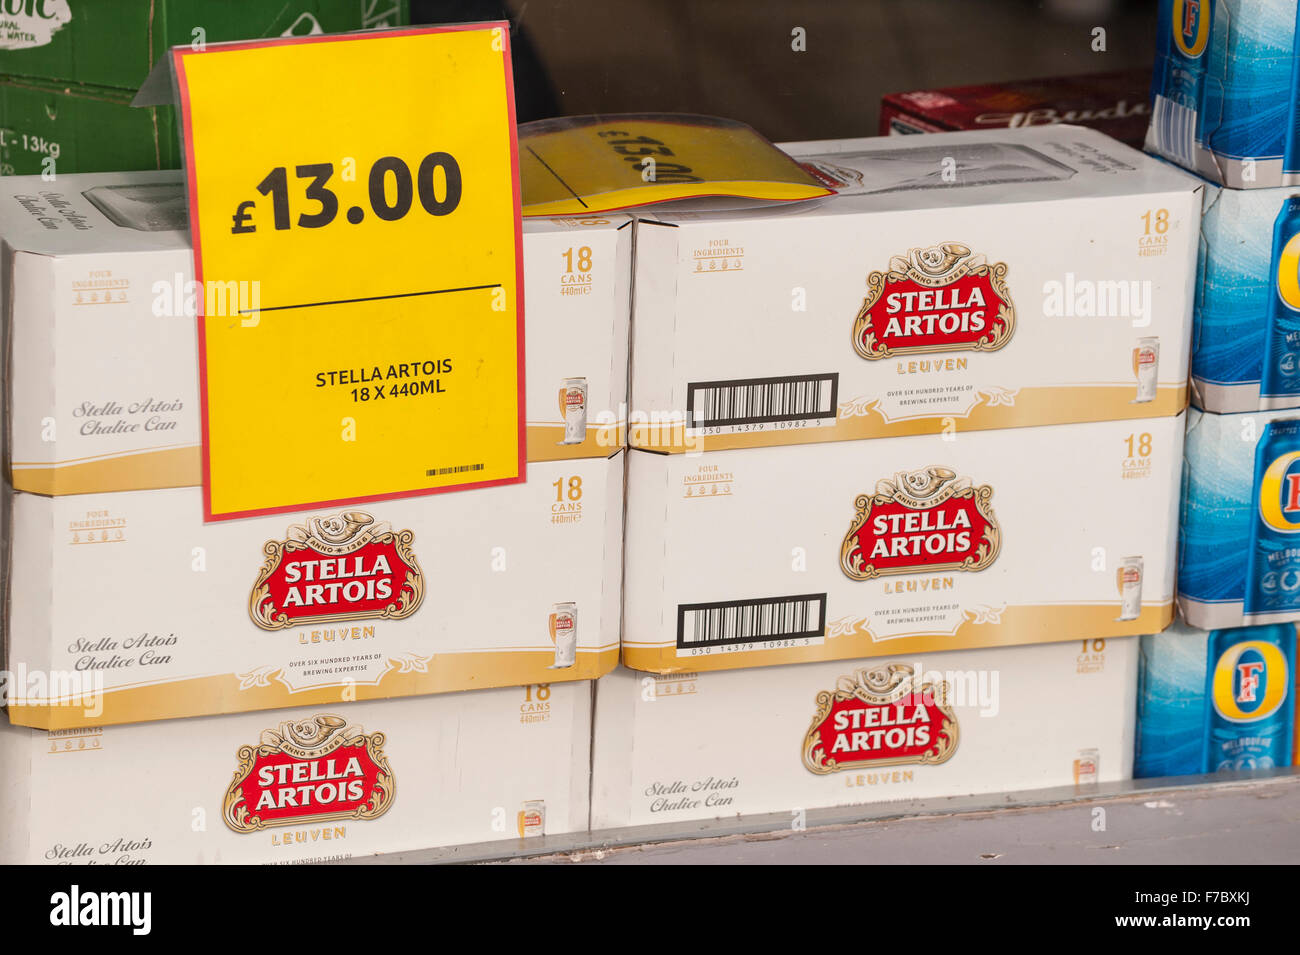 Cheap Stella Artois lager beer for sale in a supermarket in the Uk - Stock Image